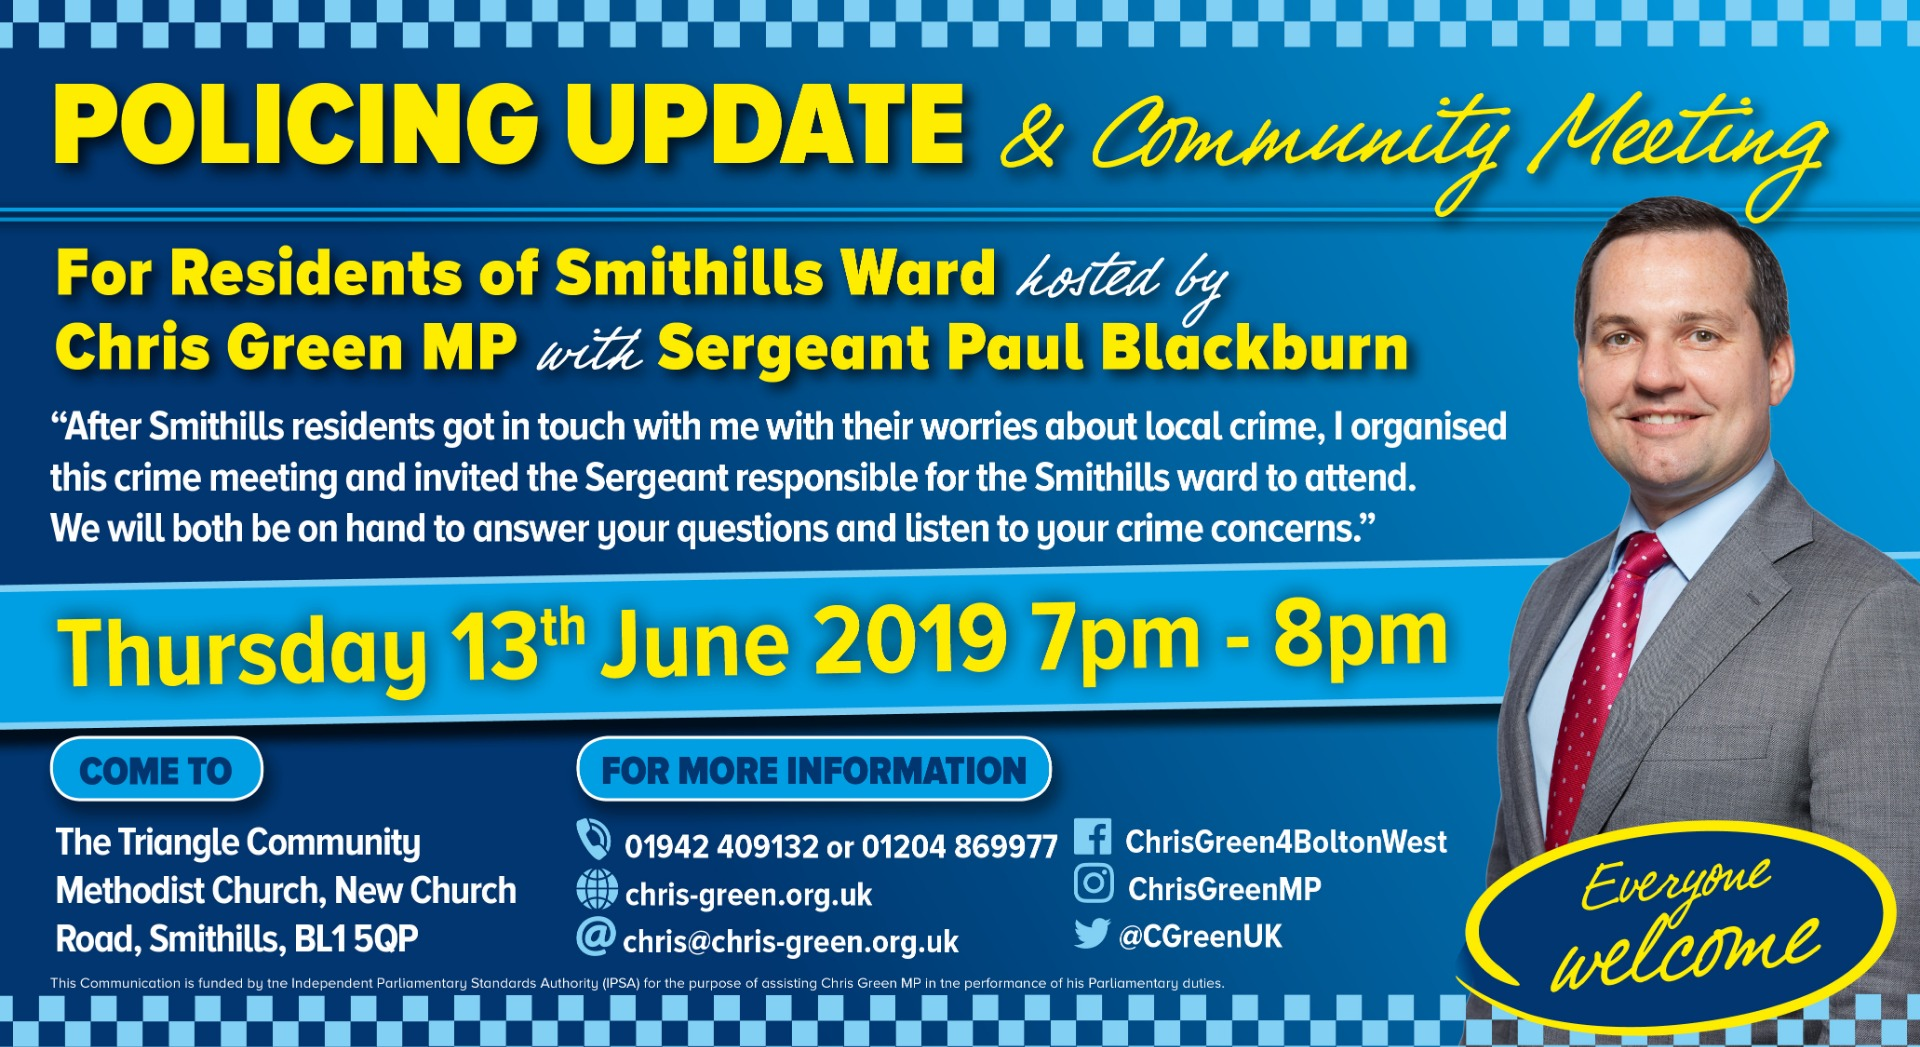 Smithills residents invited to important crime meeting